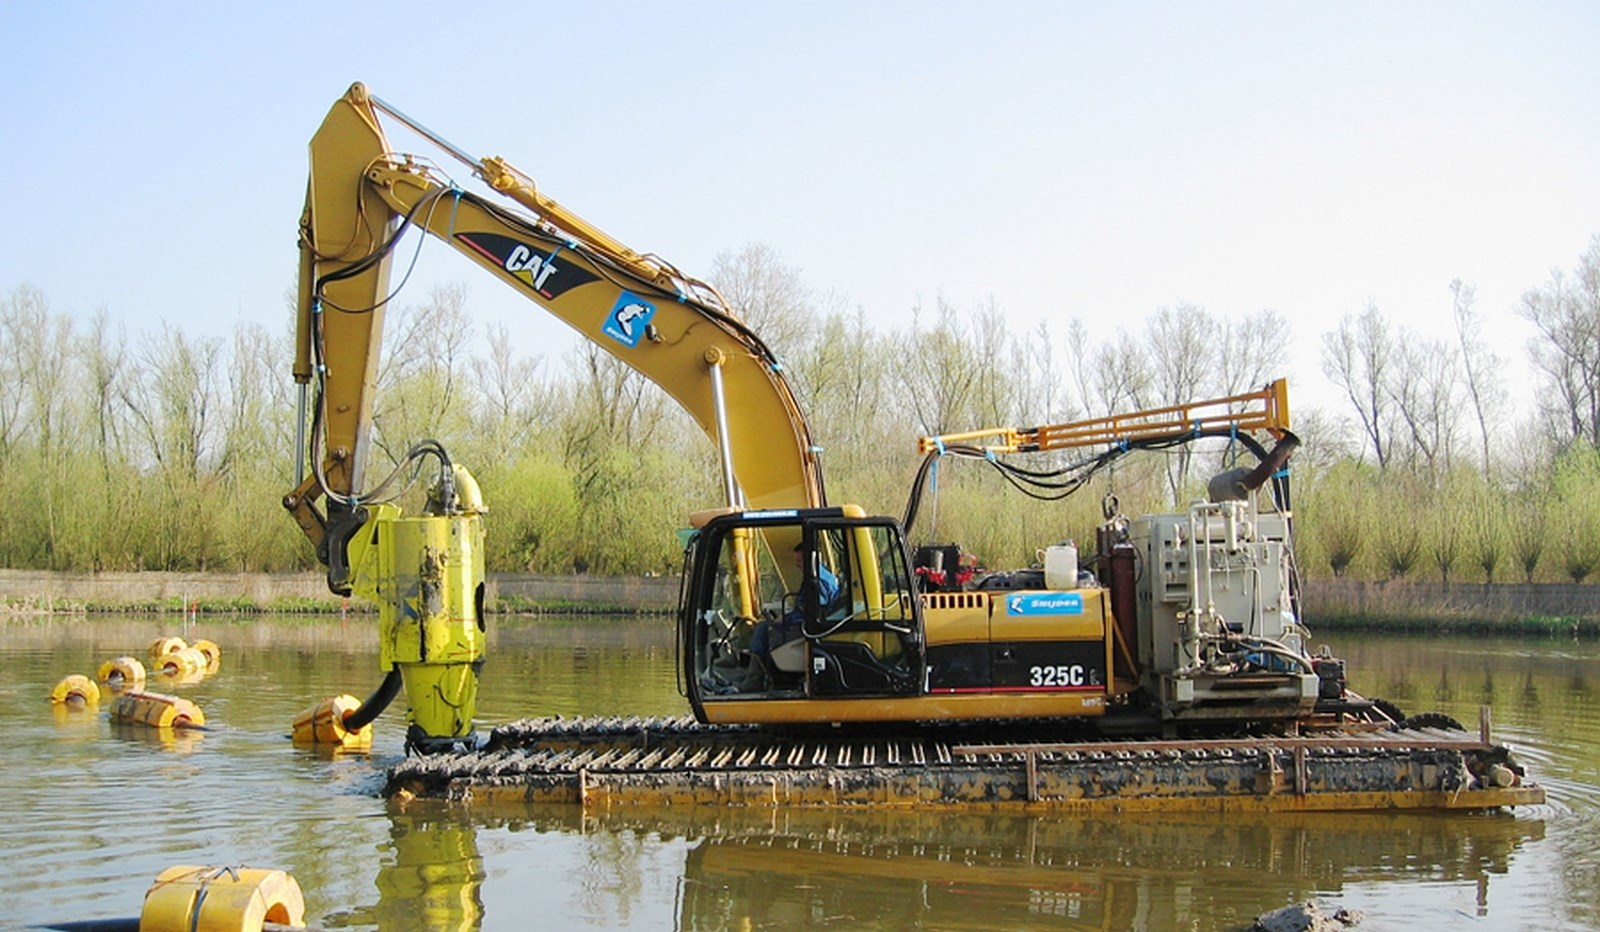 dop submersible dredge pump 200 hydraulically driven submersible